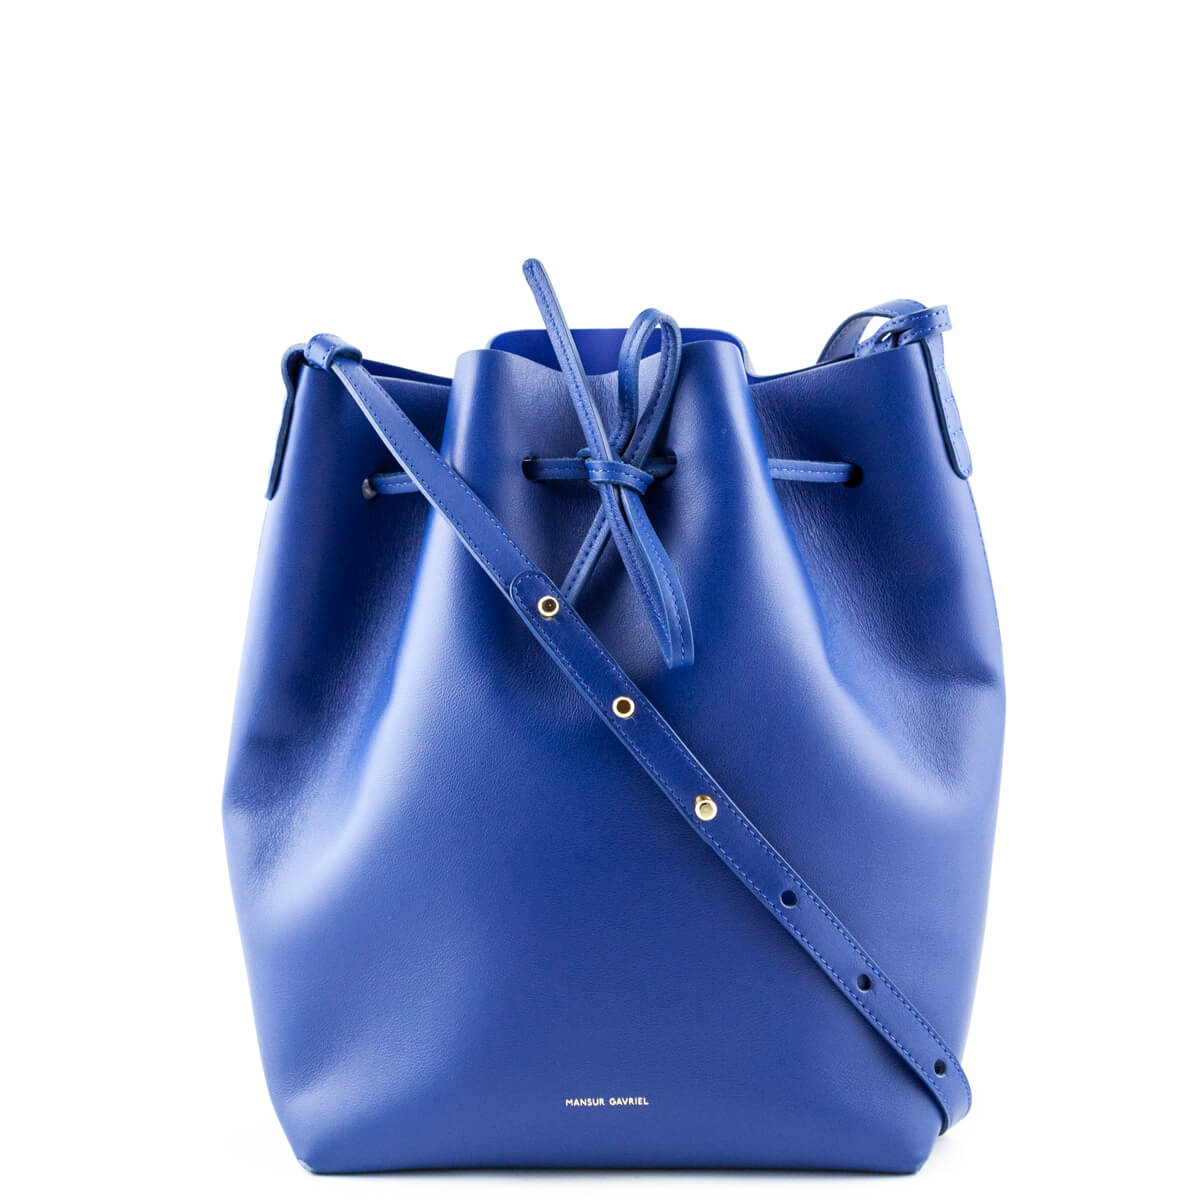 be288568be5e4 Mansur Gavriel Royal Blue Calfskin Bucket Bag - LOVE that BAG - Preowned  Authentic Designer Handbags ...